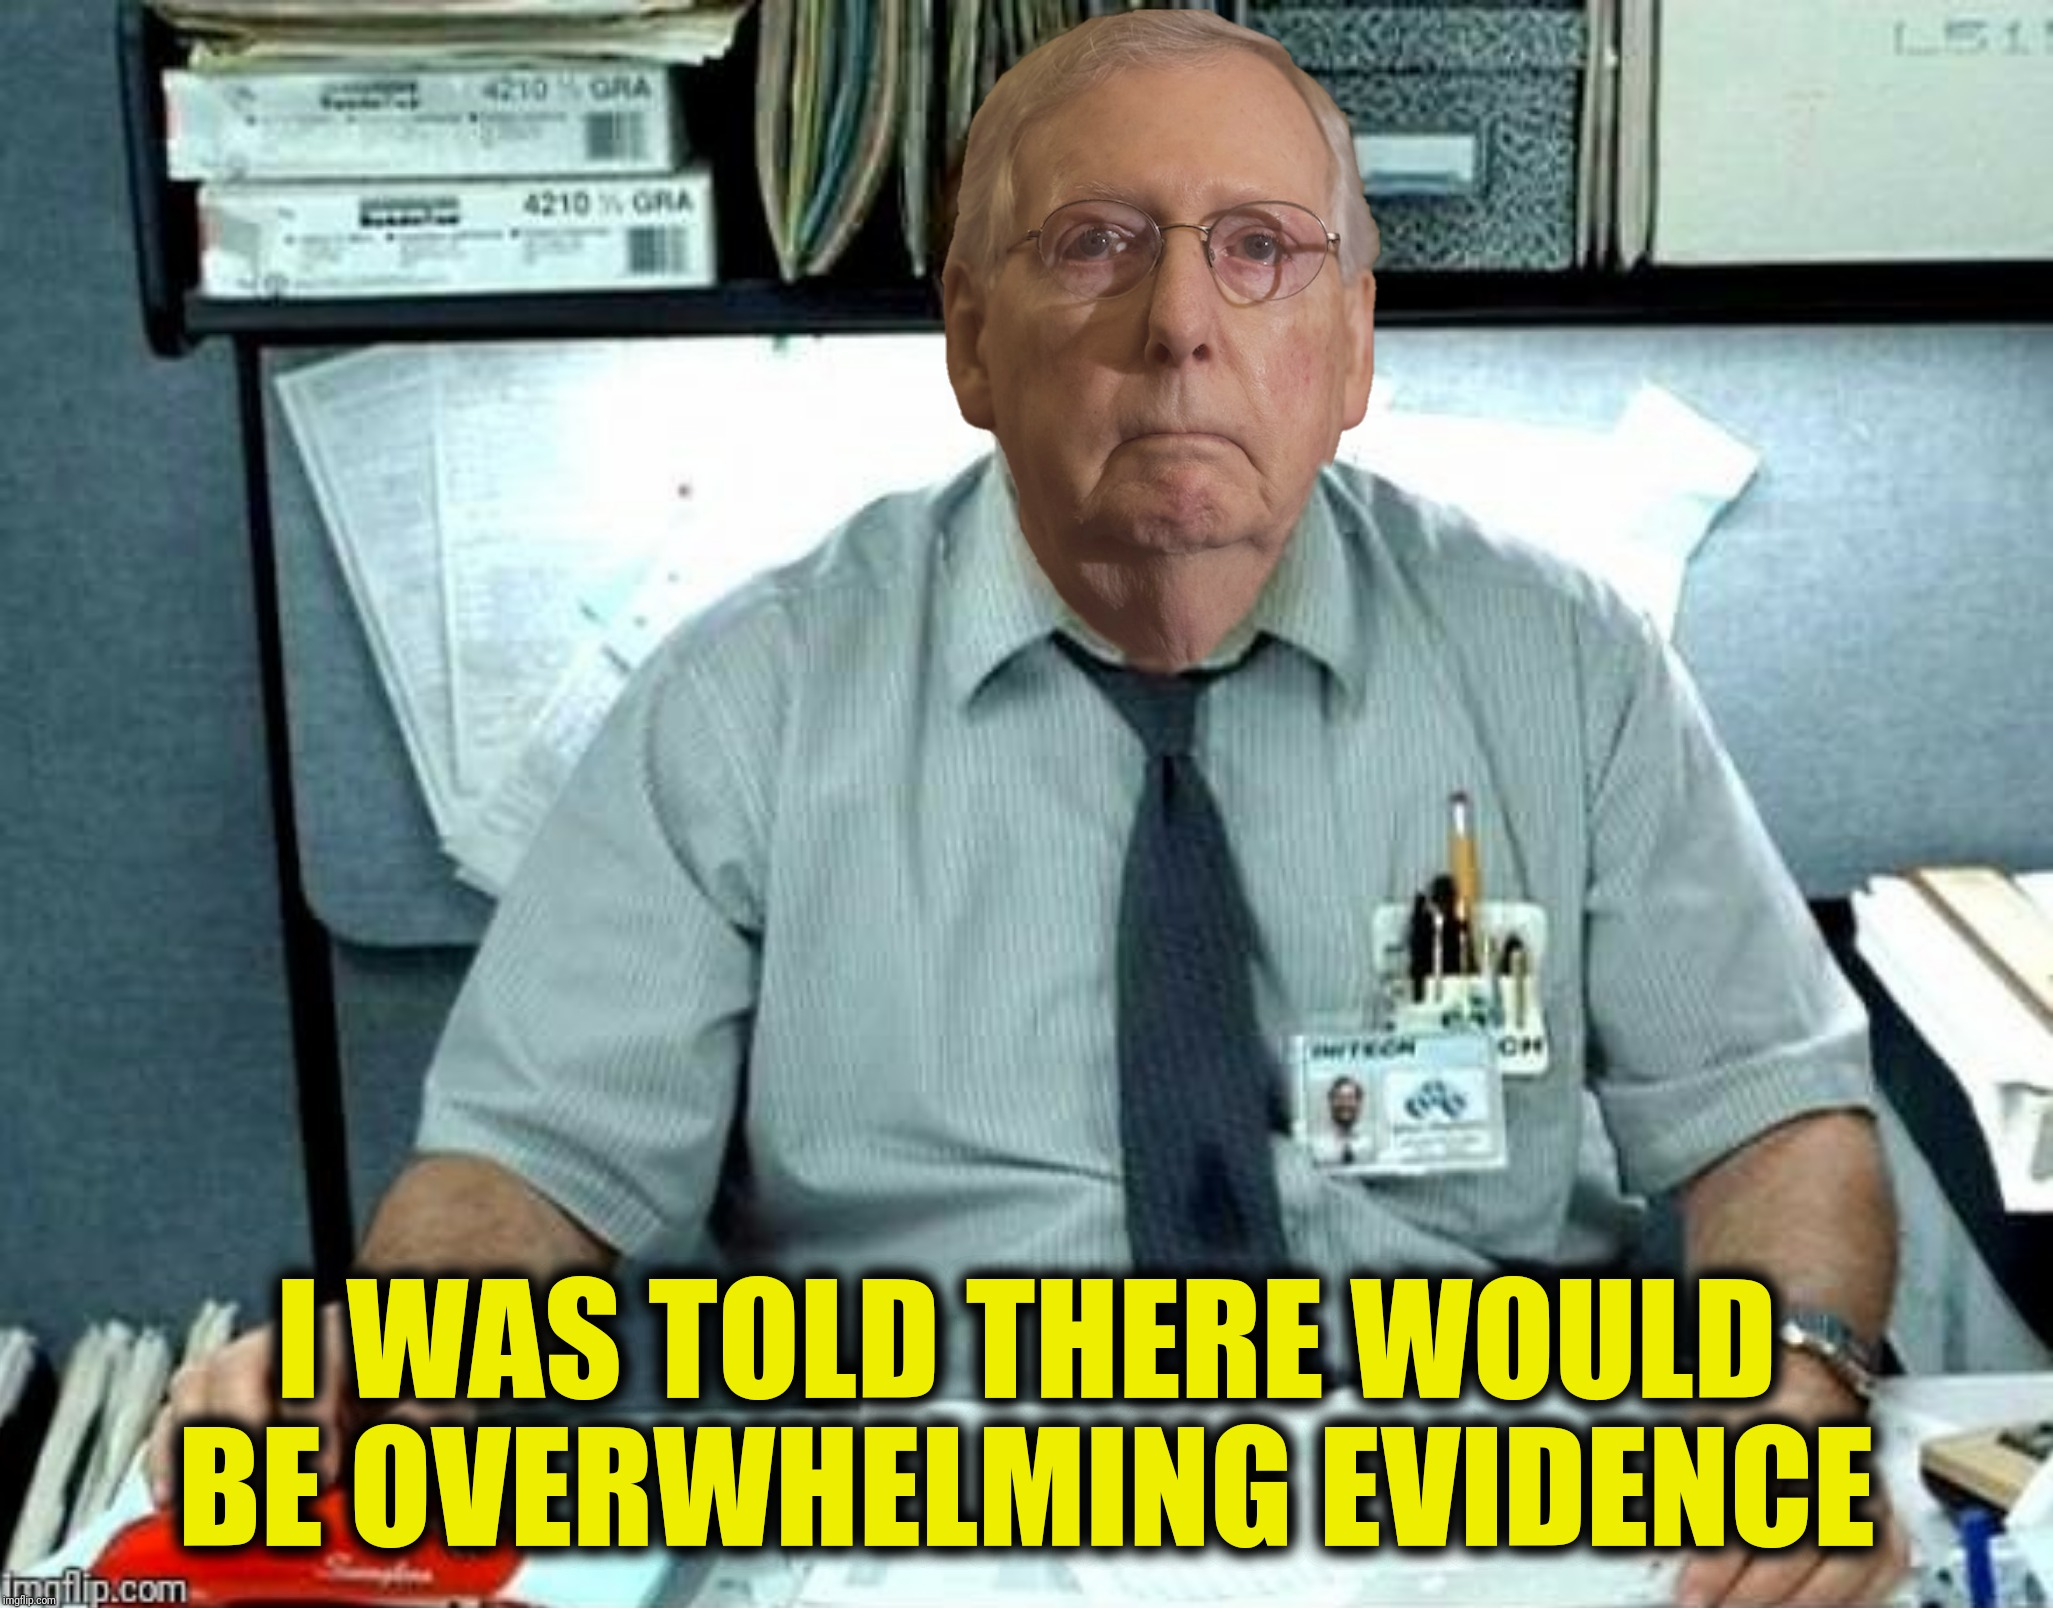 Bad Photoshop Sunday presents:  You keep saying those words, I don't think they mean what you want me to think they mean |  I WAS TOLD THERE WOULD BE OVERWHELMING EVIDENCE | image tagged in bad photoshop sunday,mitch mcconnell,office space,overwhelming evidence,i was told there would be | made w/ Imgflip meme maker